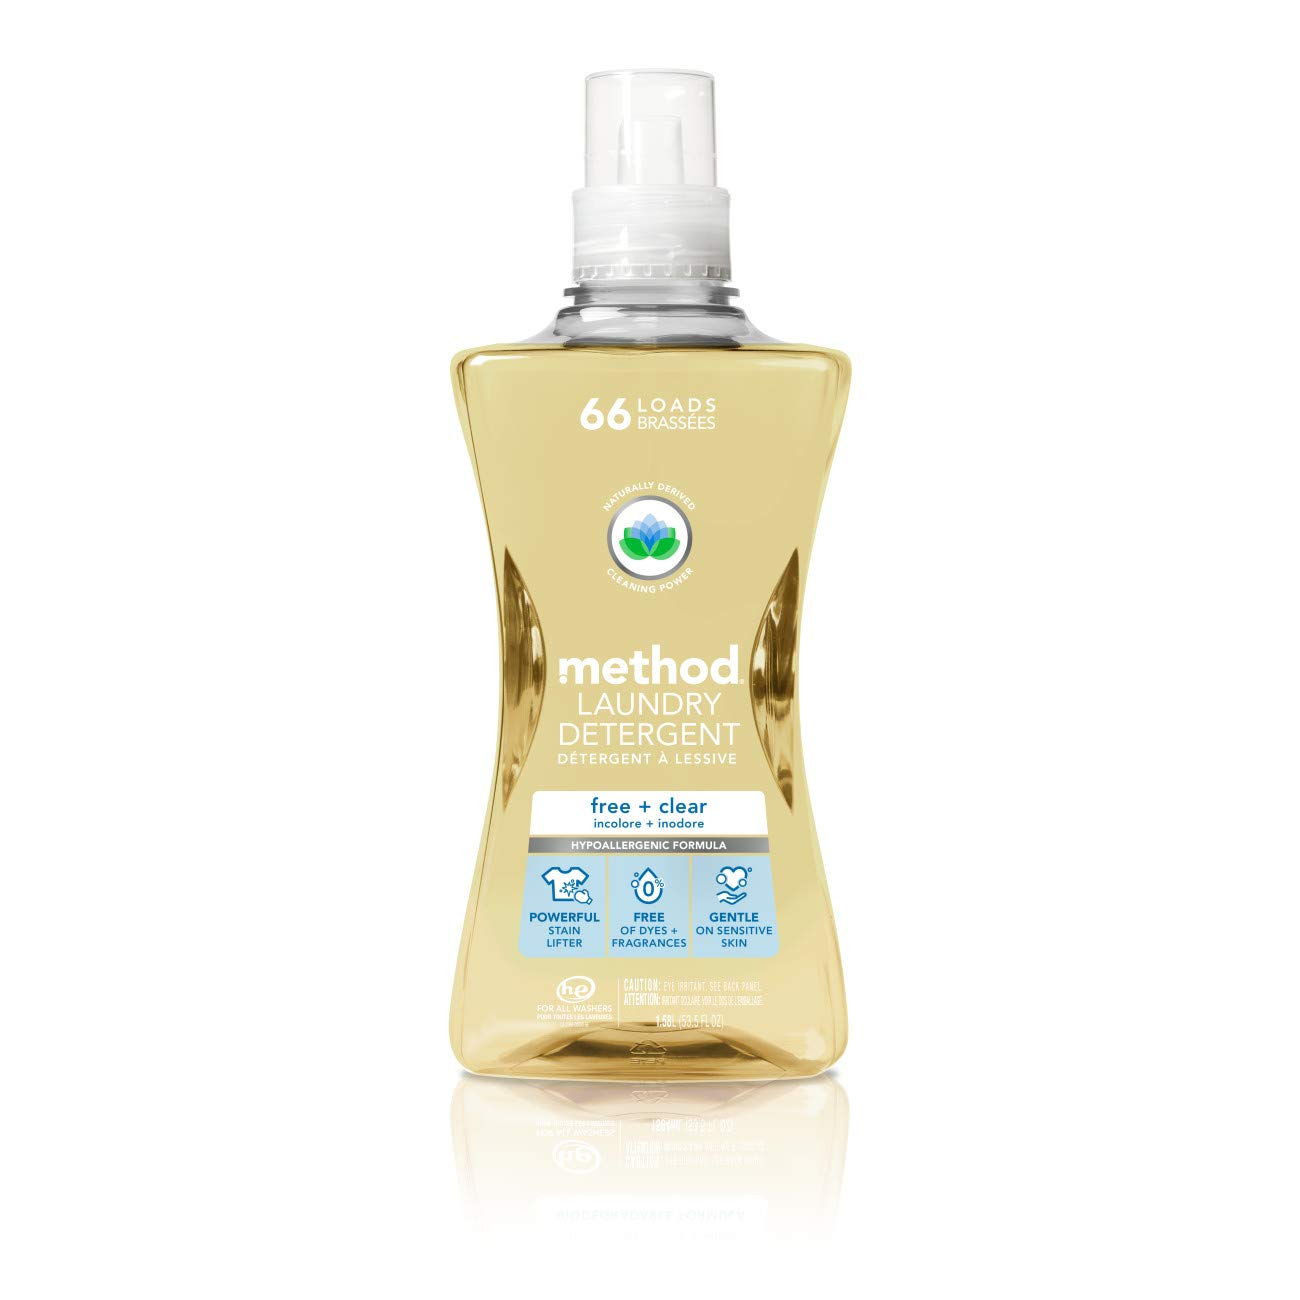 Method Laundry Detergent, Free + Clear, 53.5 Fluid Ounces, 66 Loads